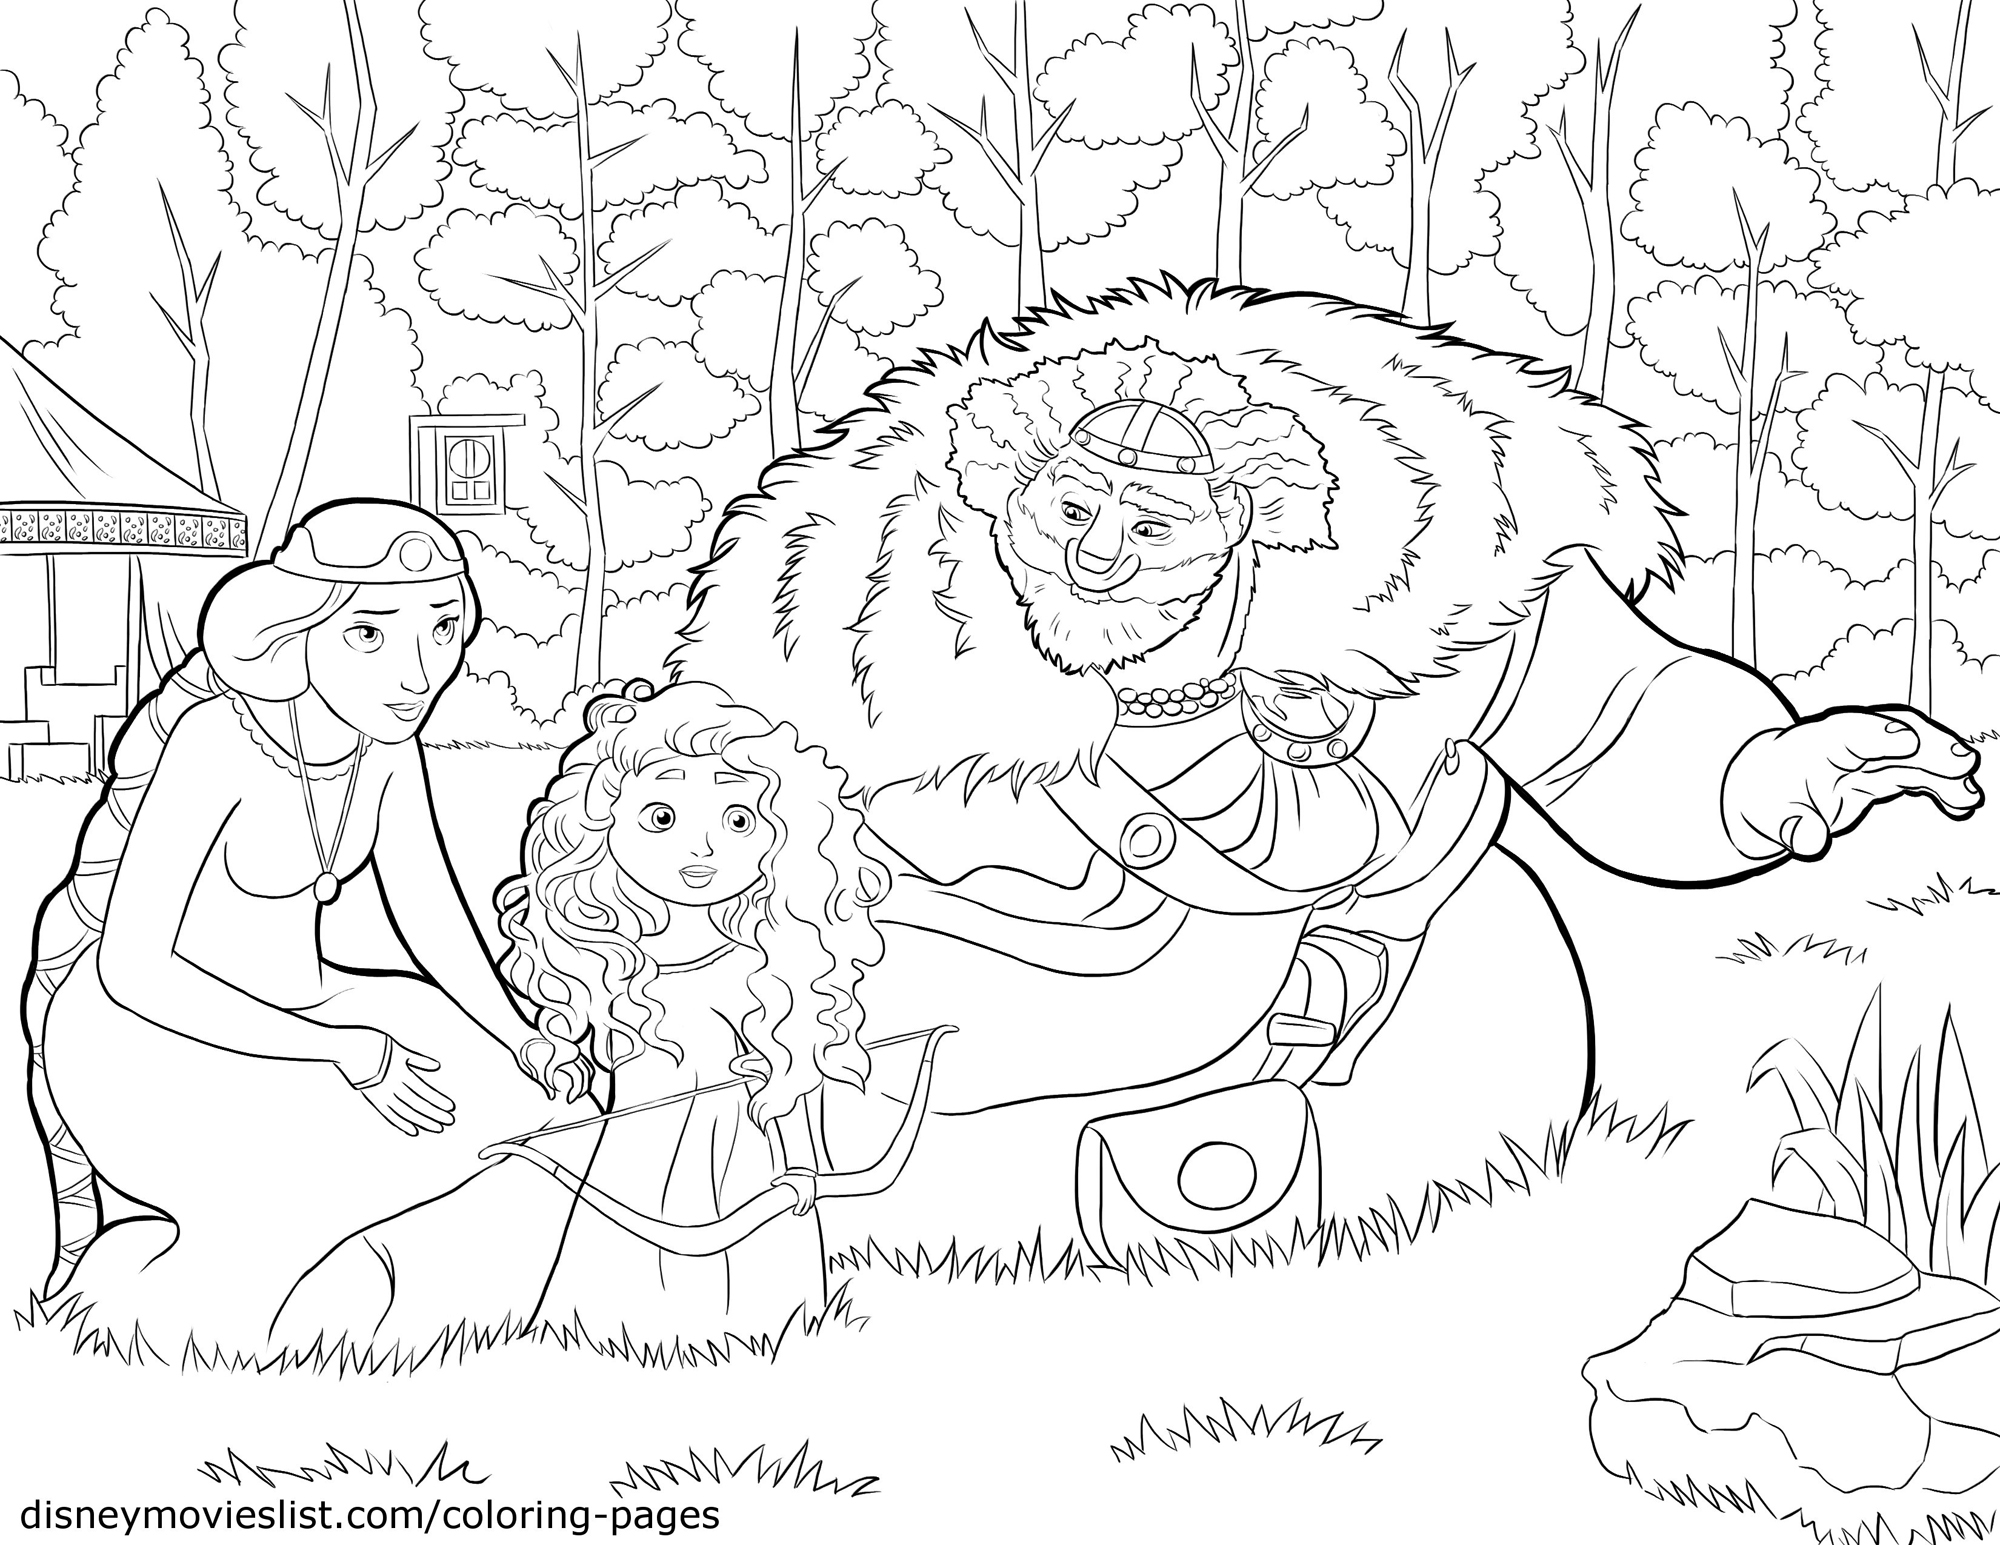 Young Merida Brave Coloring Pages Disney Movies List